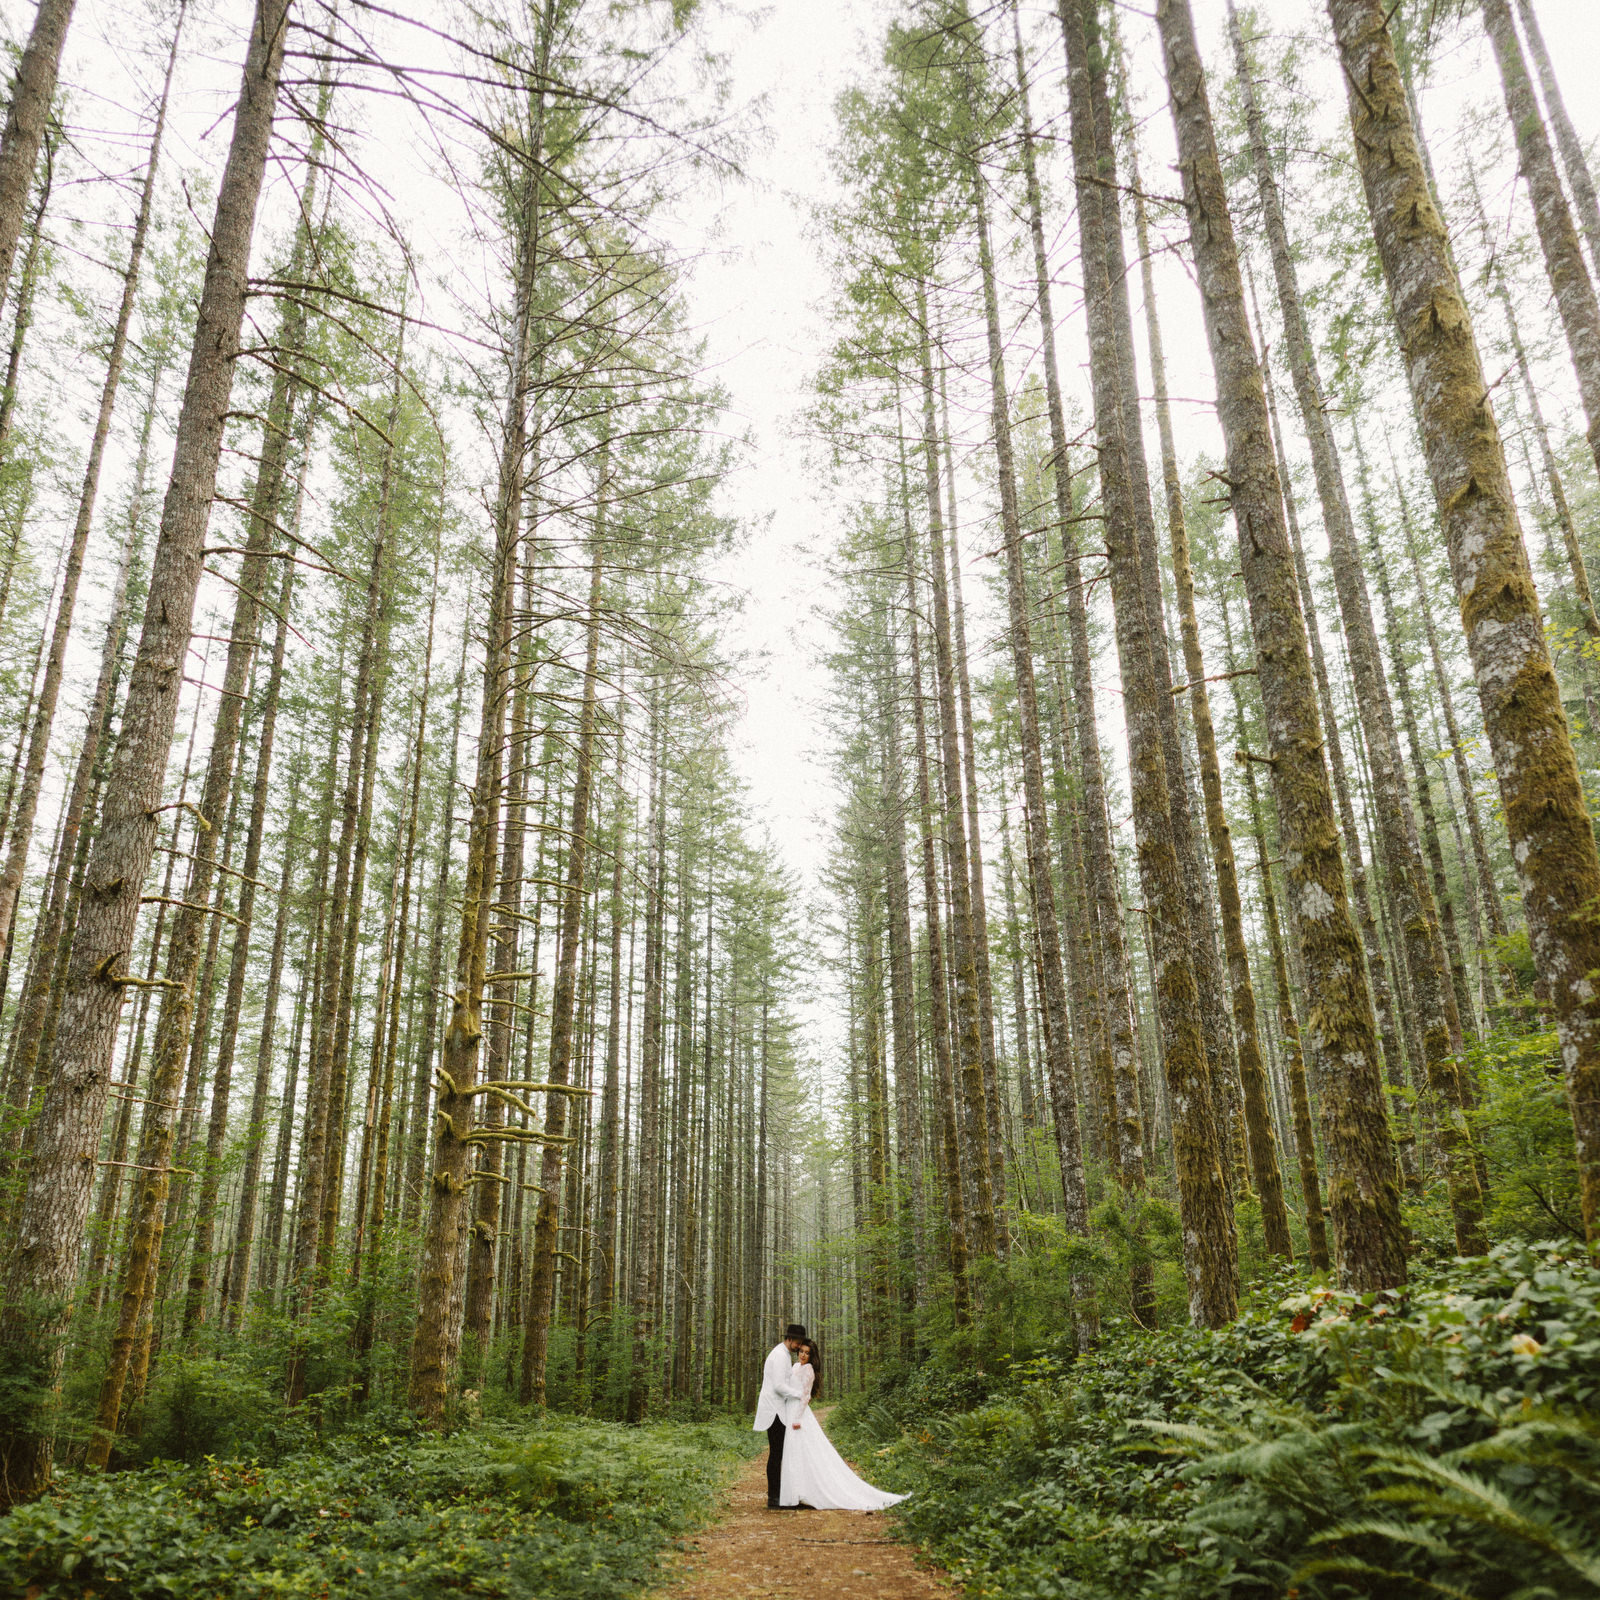 athena-and-camron-seattle-elopement-wedding-benj-haisch-rattlesnake-lake-christian-couple-goals18